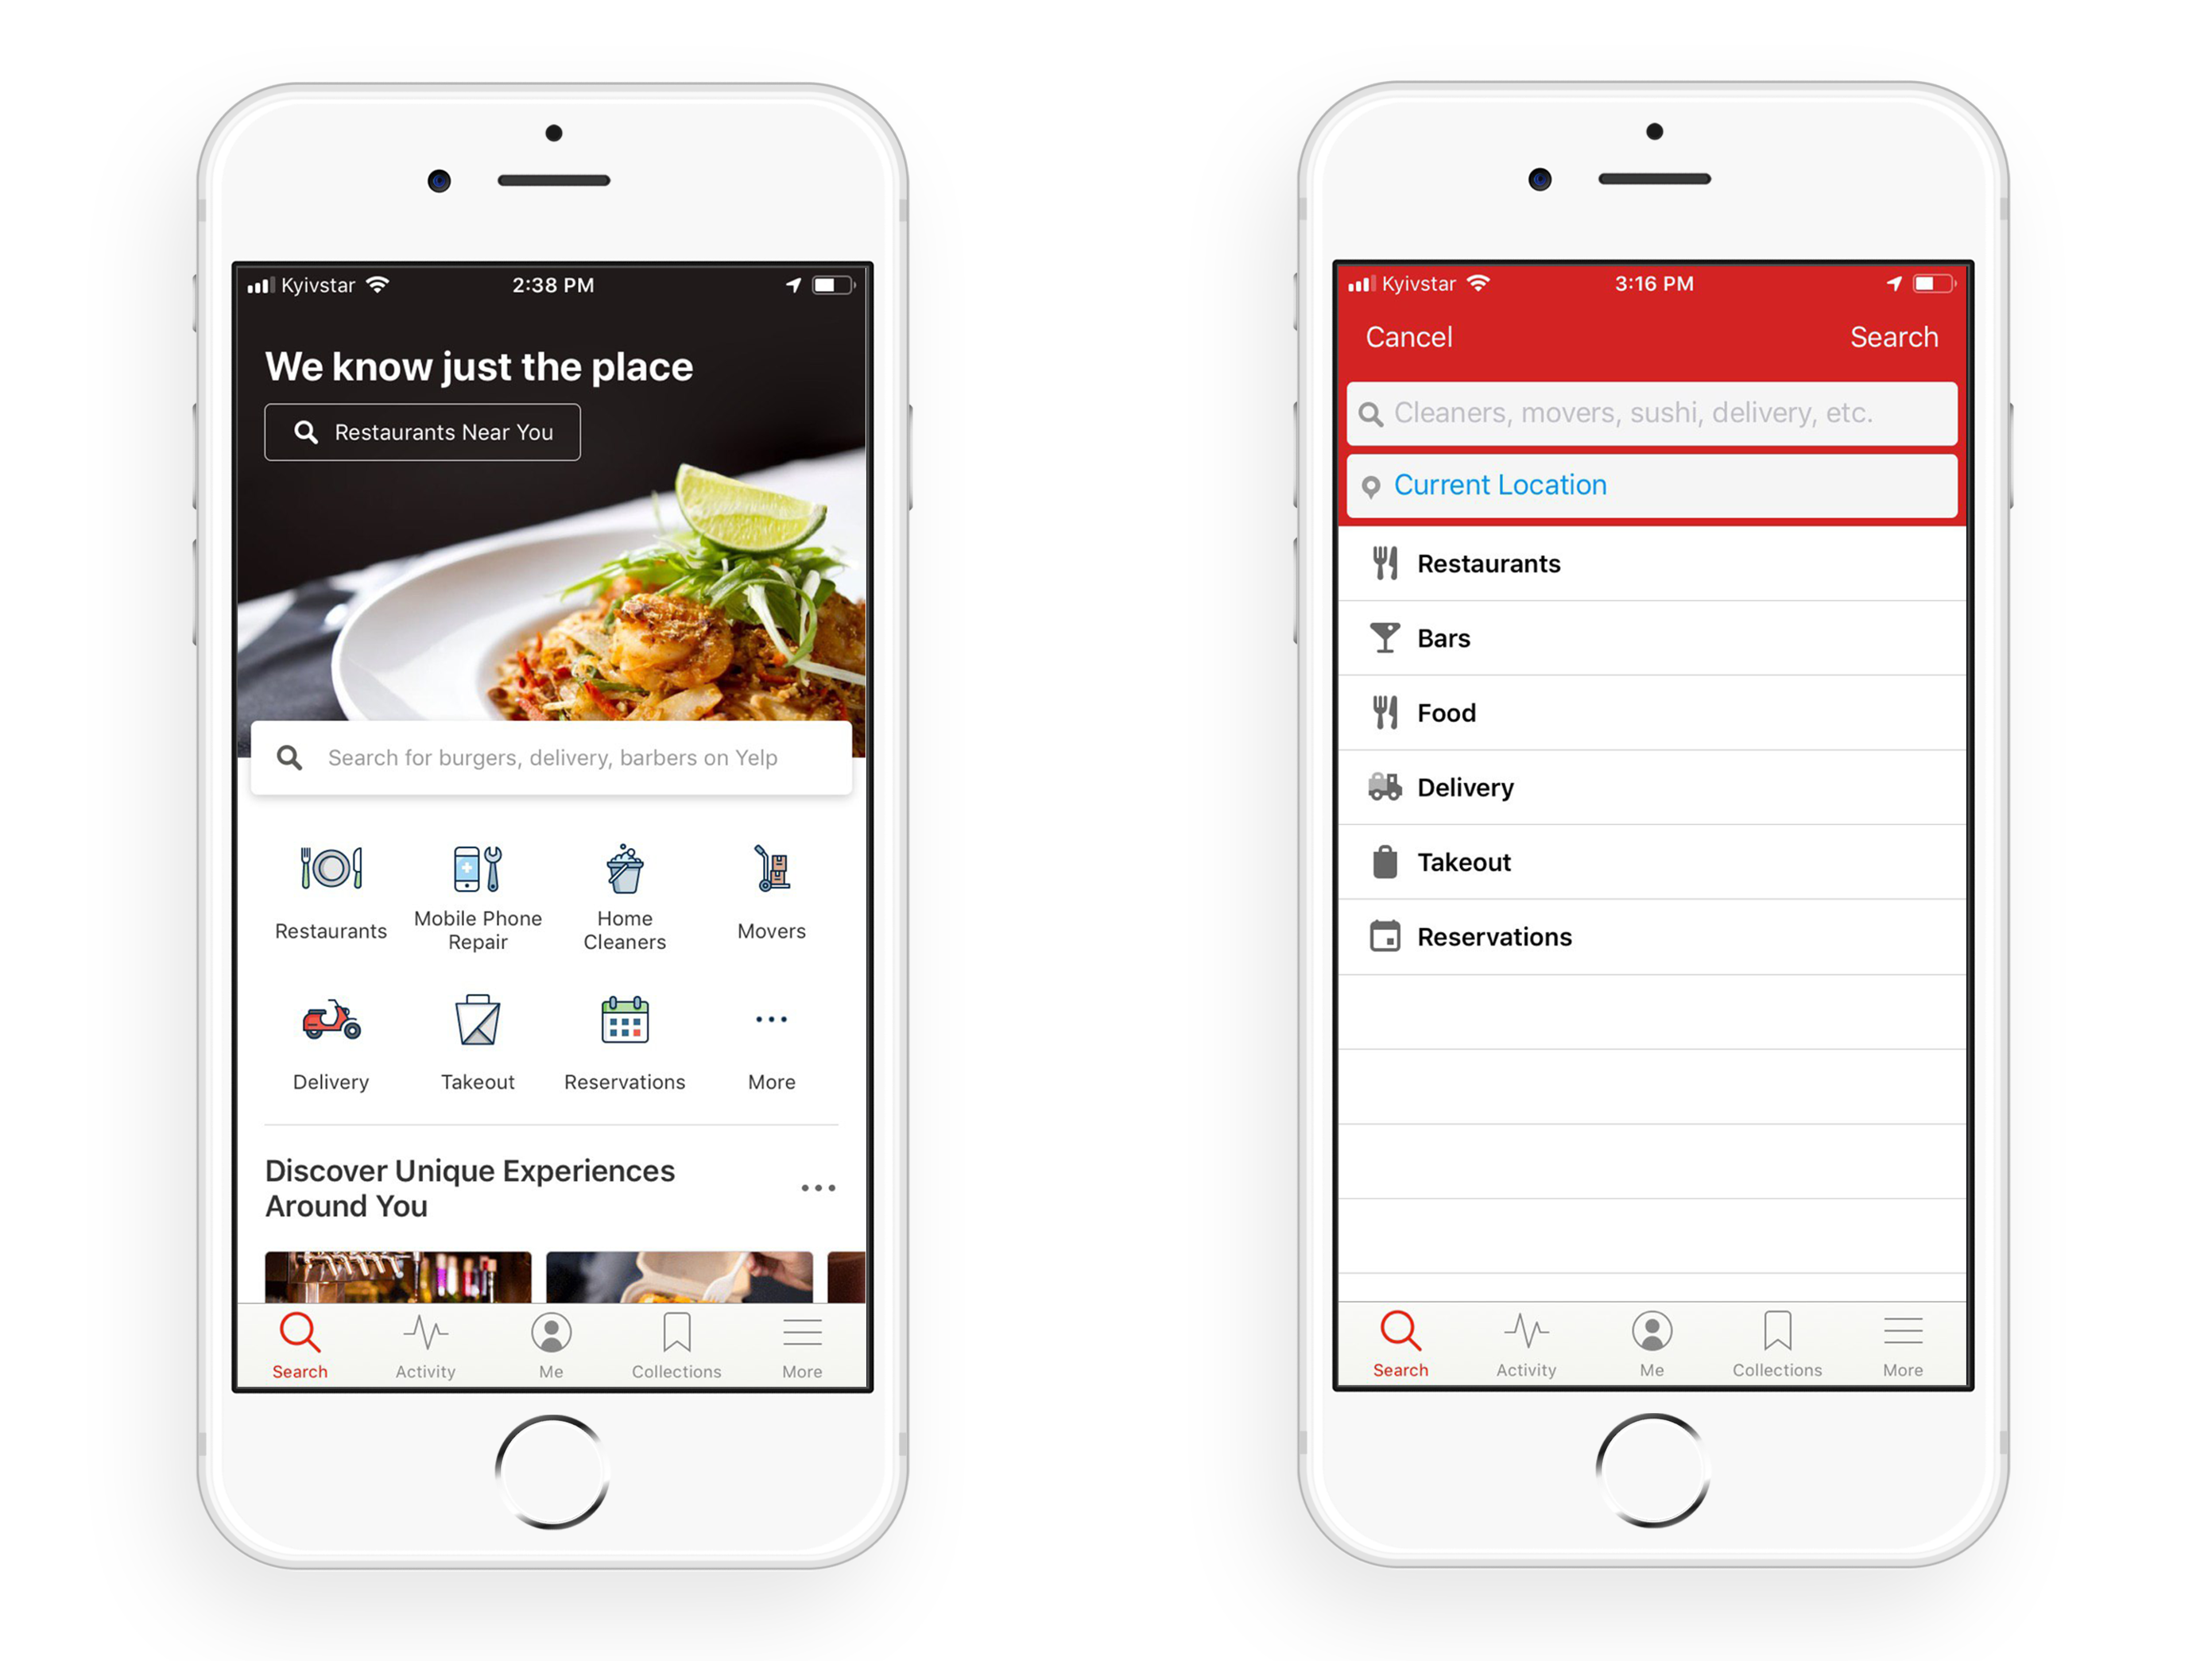 How to Create an App Like Yelp: Features, Cost, and Design